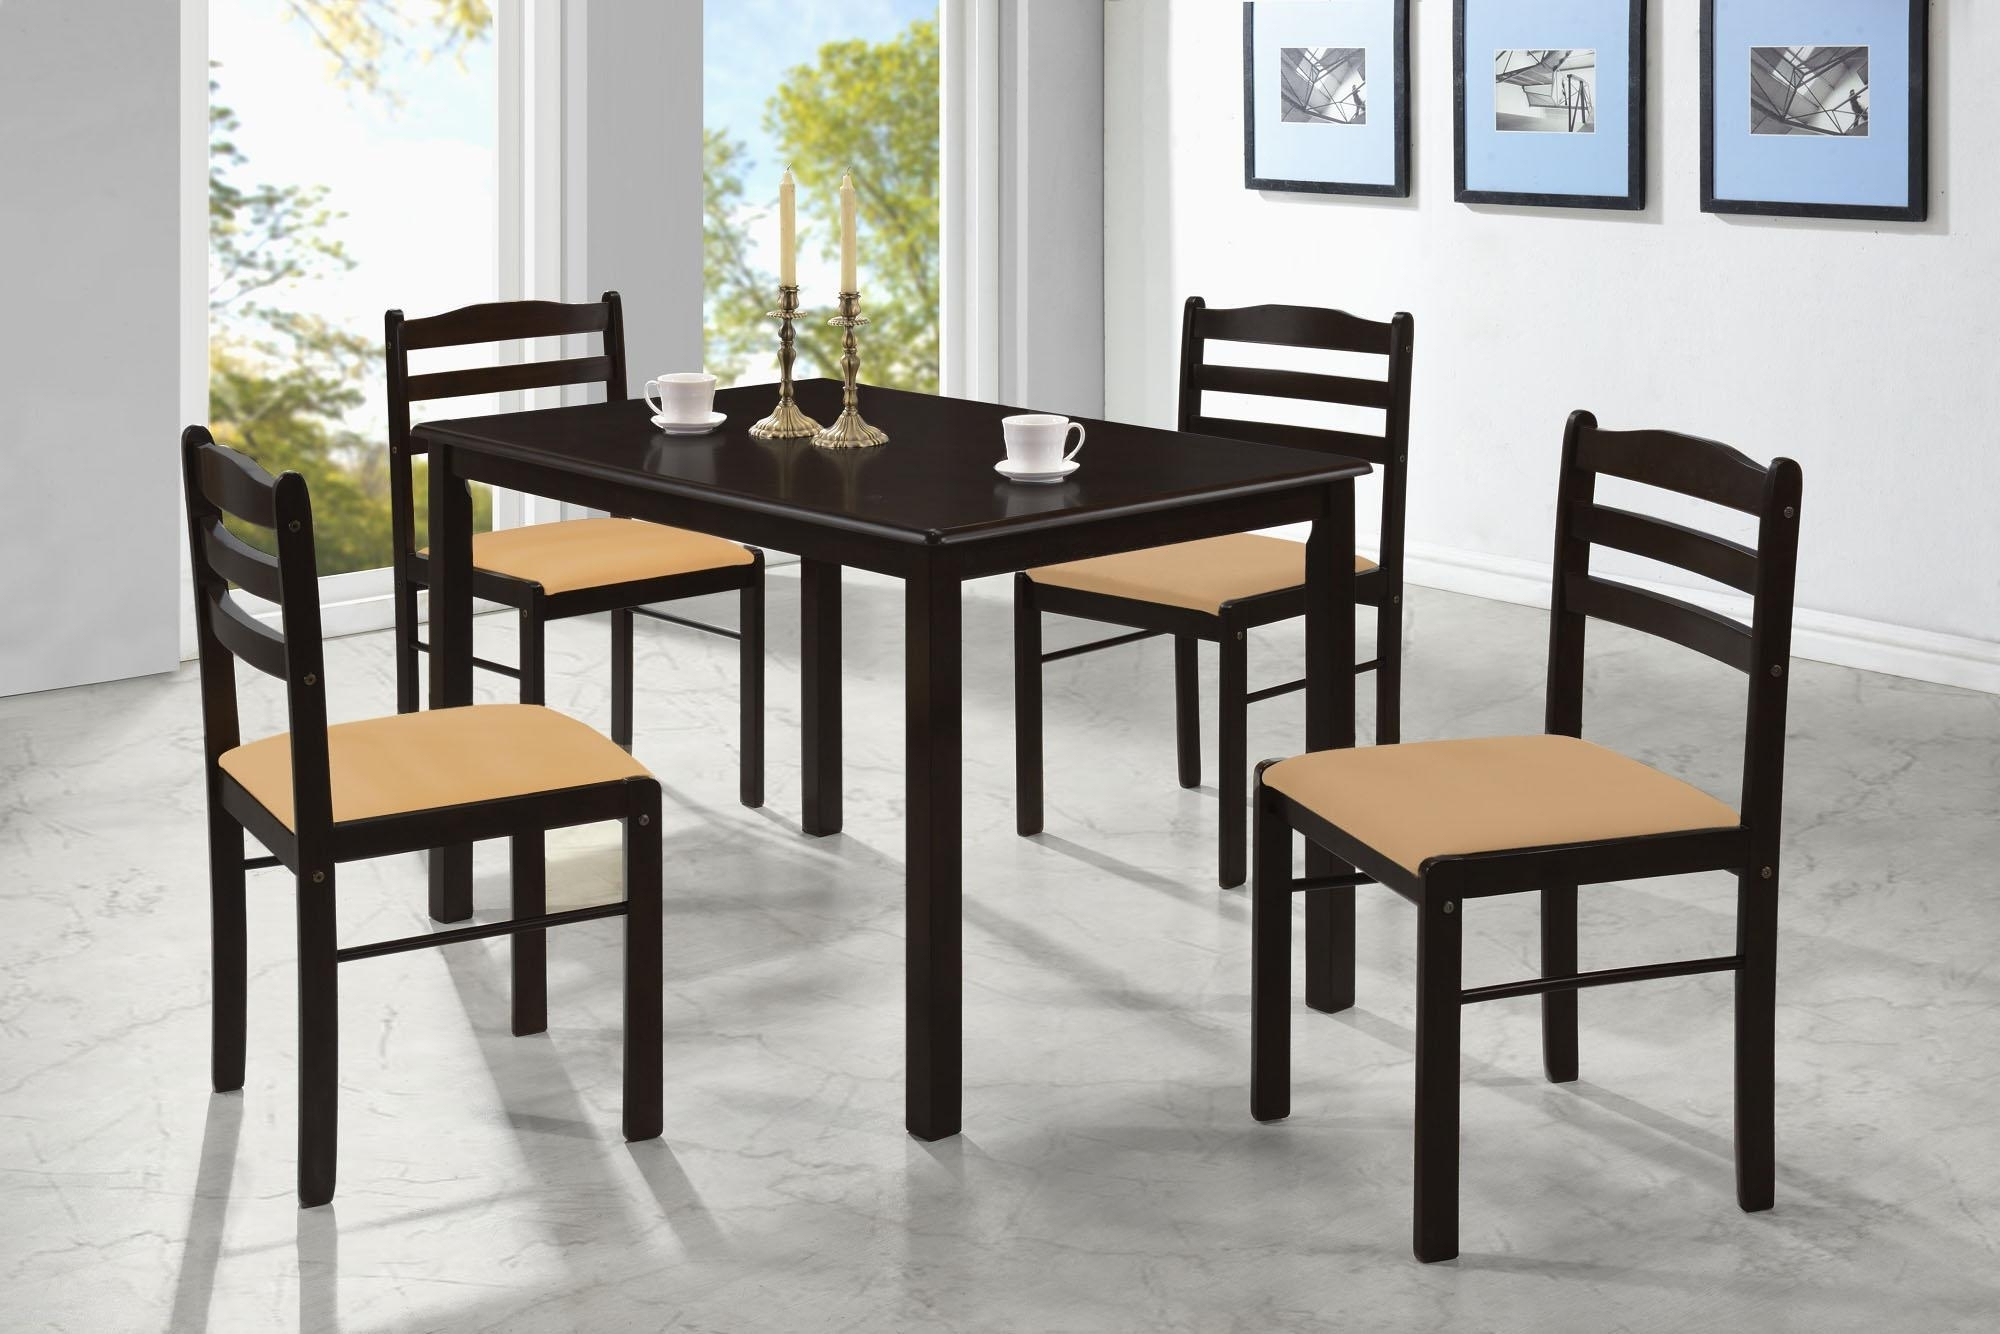 Latest Kitchen Furniture For Sale – Dining Furniture Prices, Brands Pertaining To Cheap Dining Tables And Chairs (View 16 of 25)